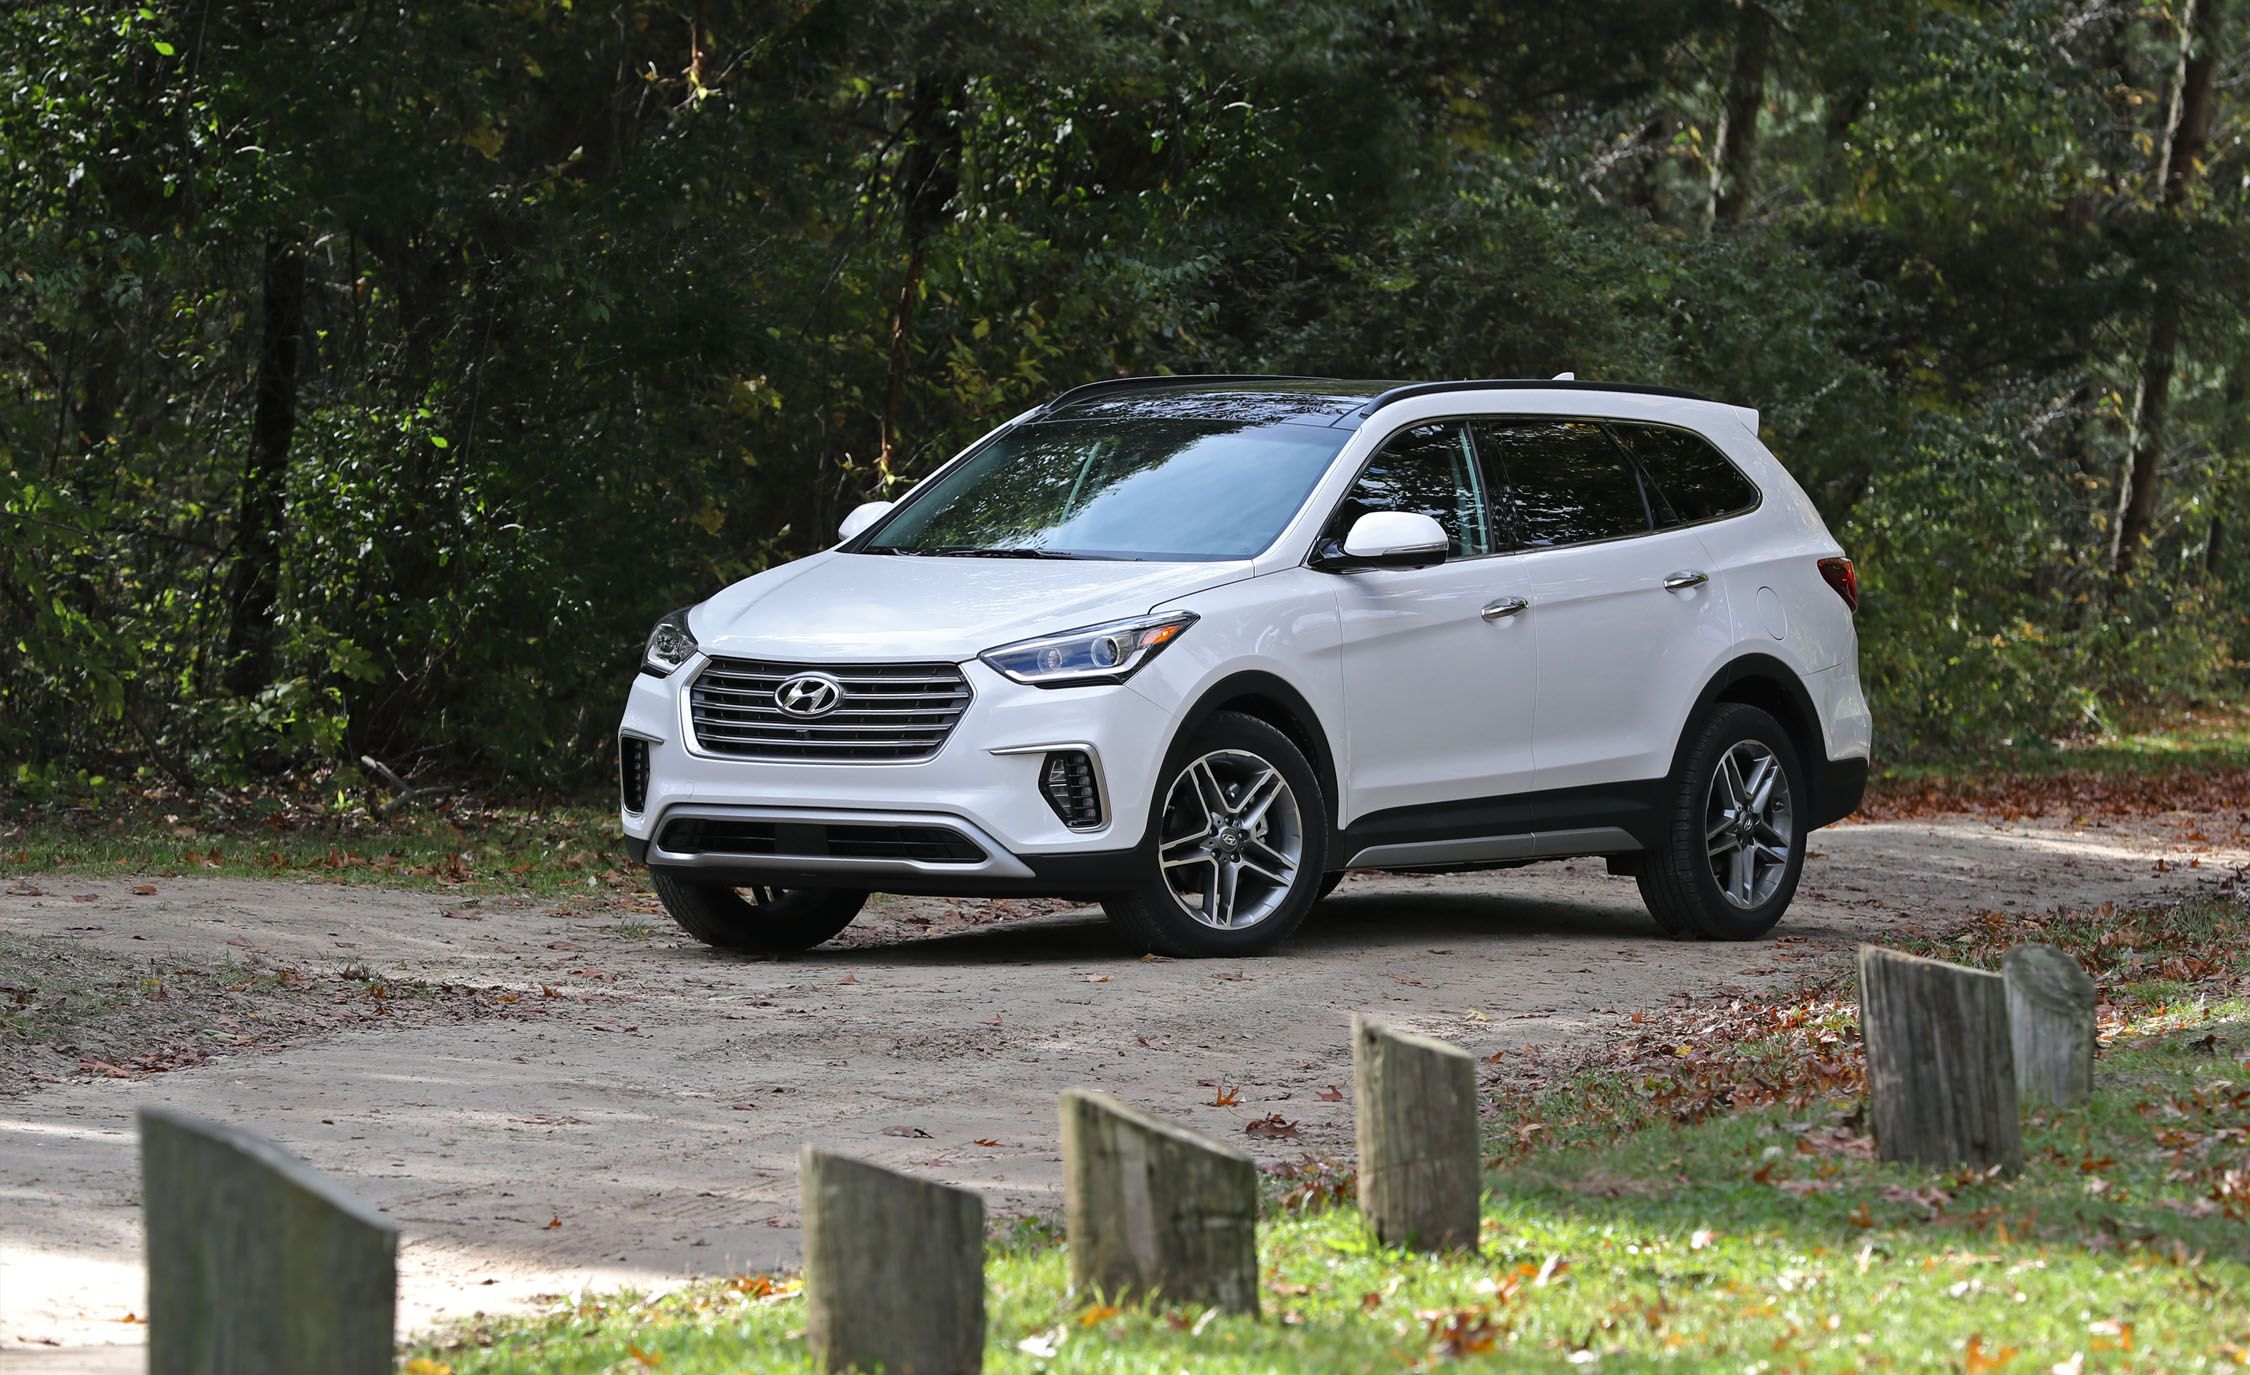 [DIAGRAM_38IS]  2017 Hyundai Santa Fe AWD Tested | 2015 Hyundai Santa Fe Engine Diagram |  | Car and Driver